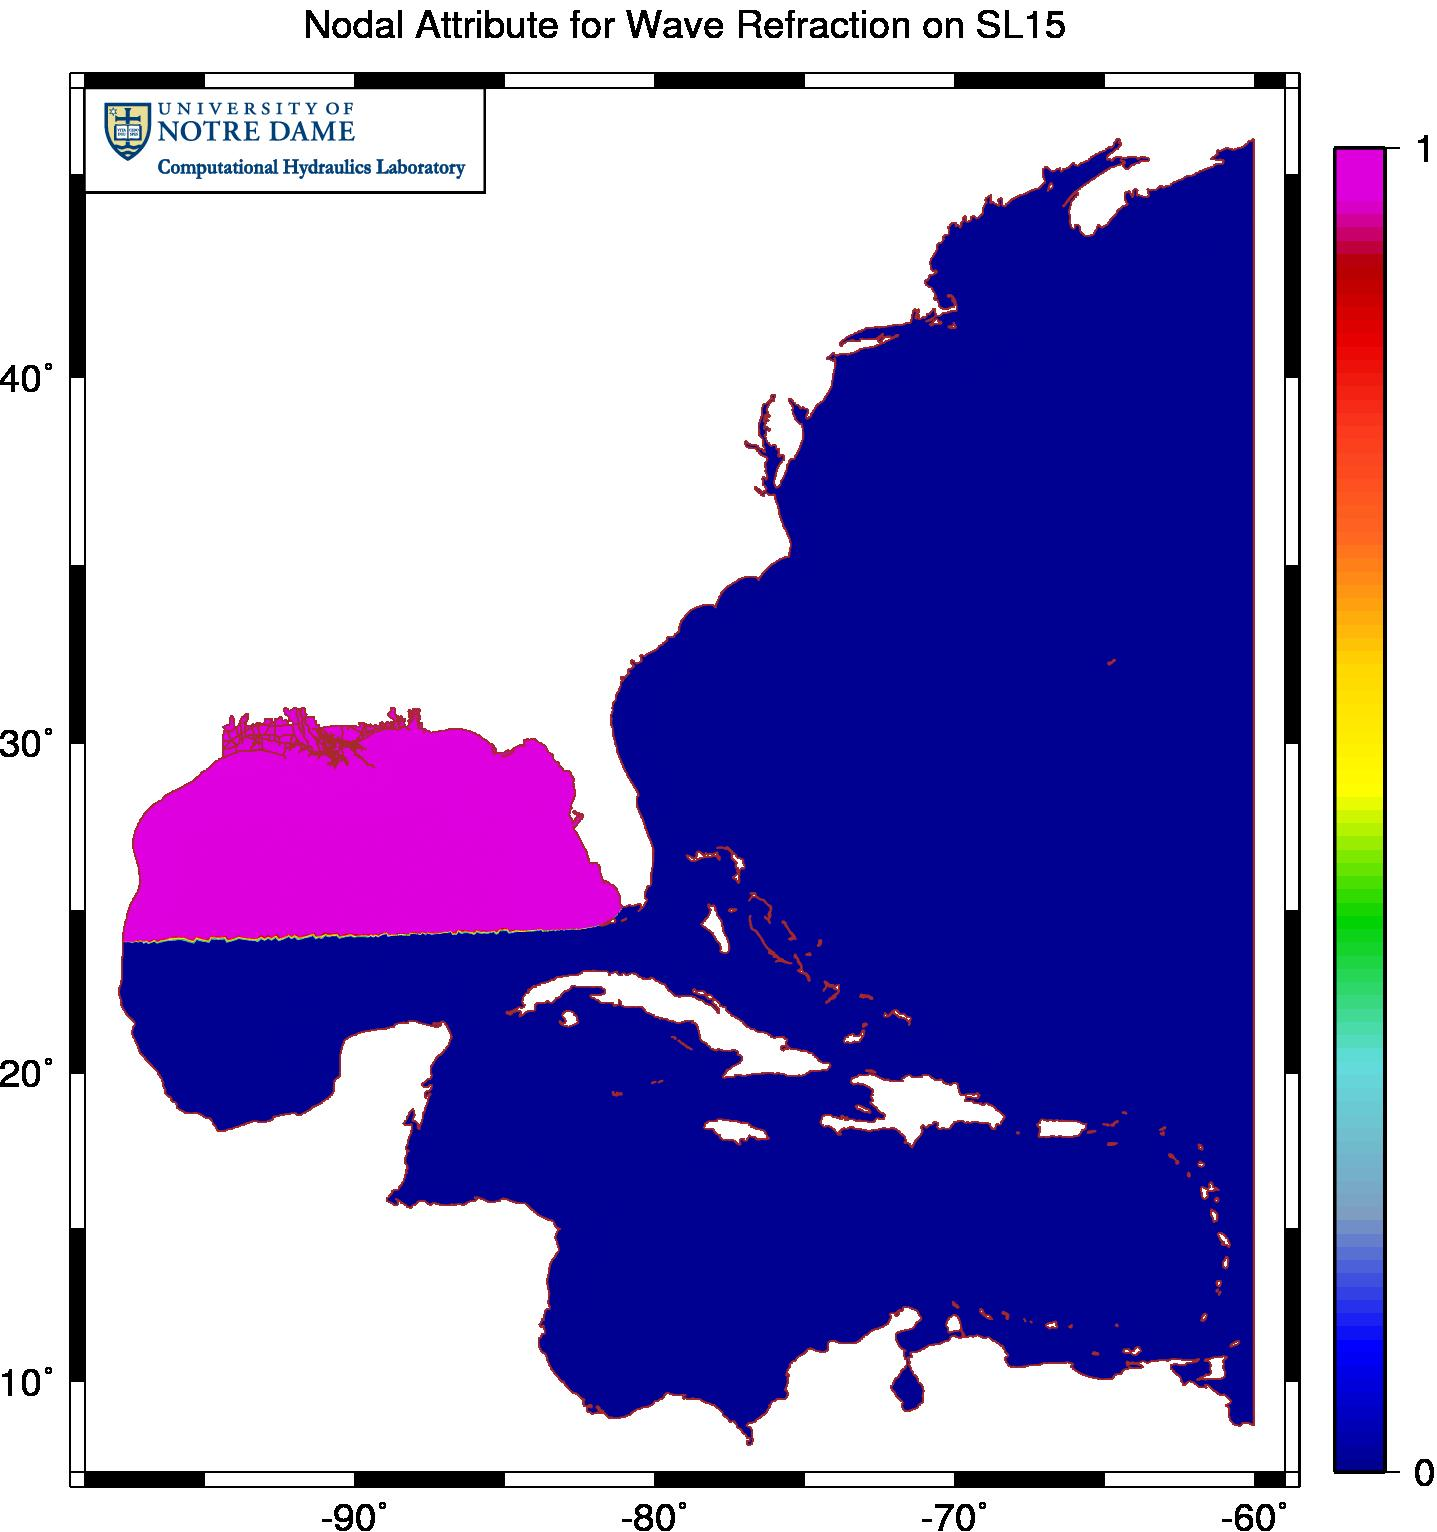 Example of enabling wave refraction only near the region of interest in the northern Gulf of Mexico.